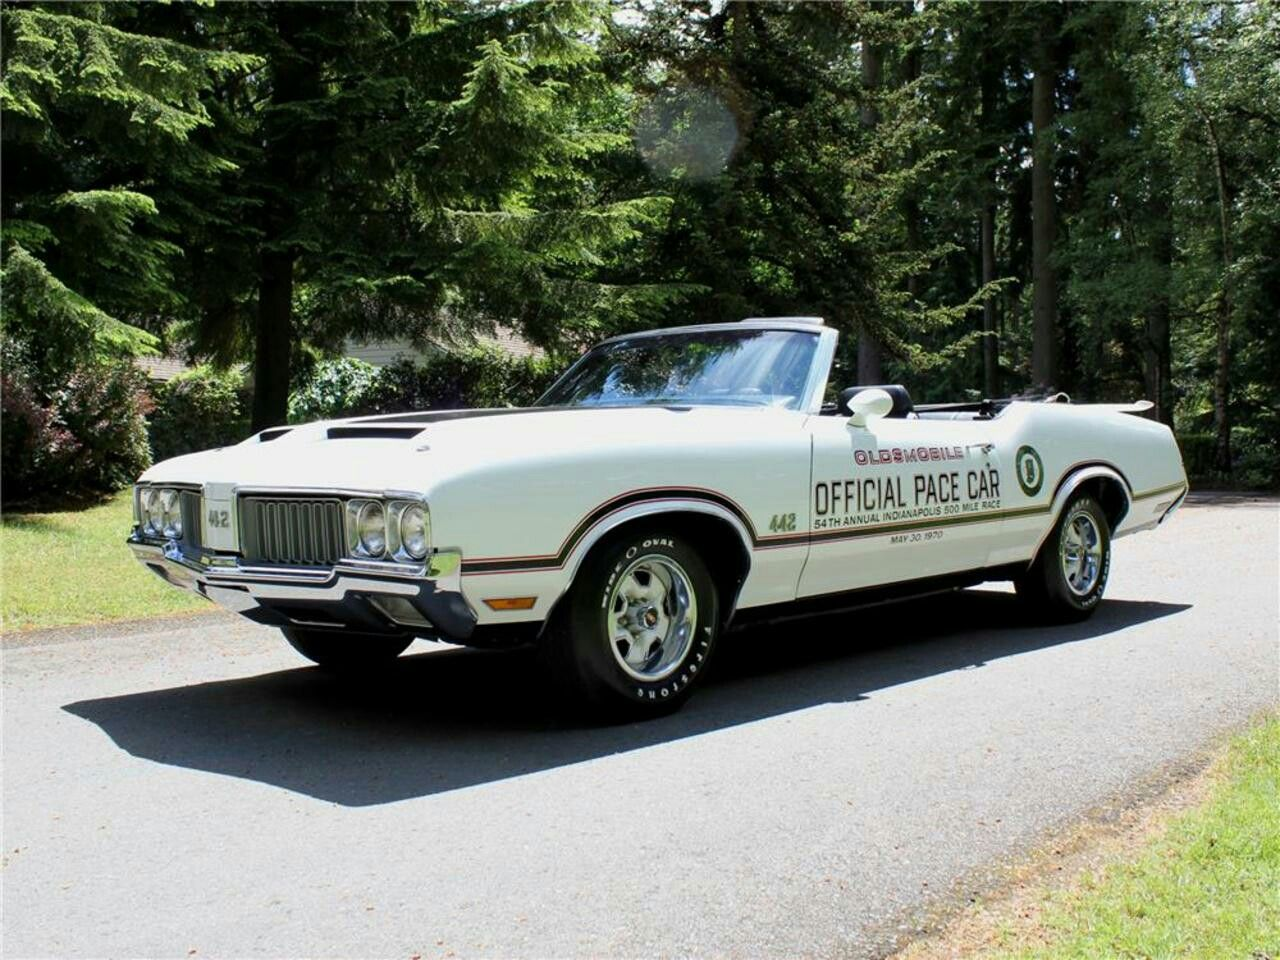 1970 olds 442 convertible pace car